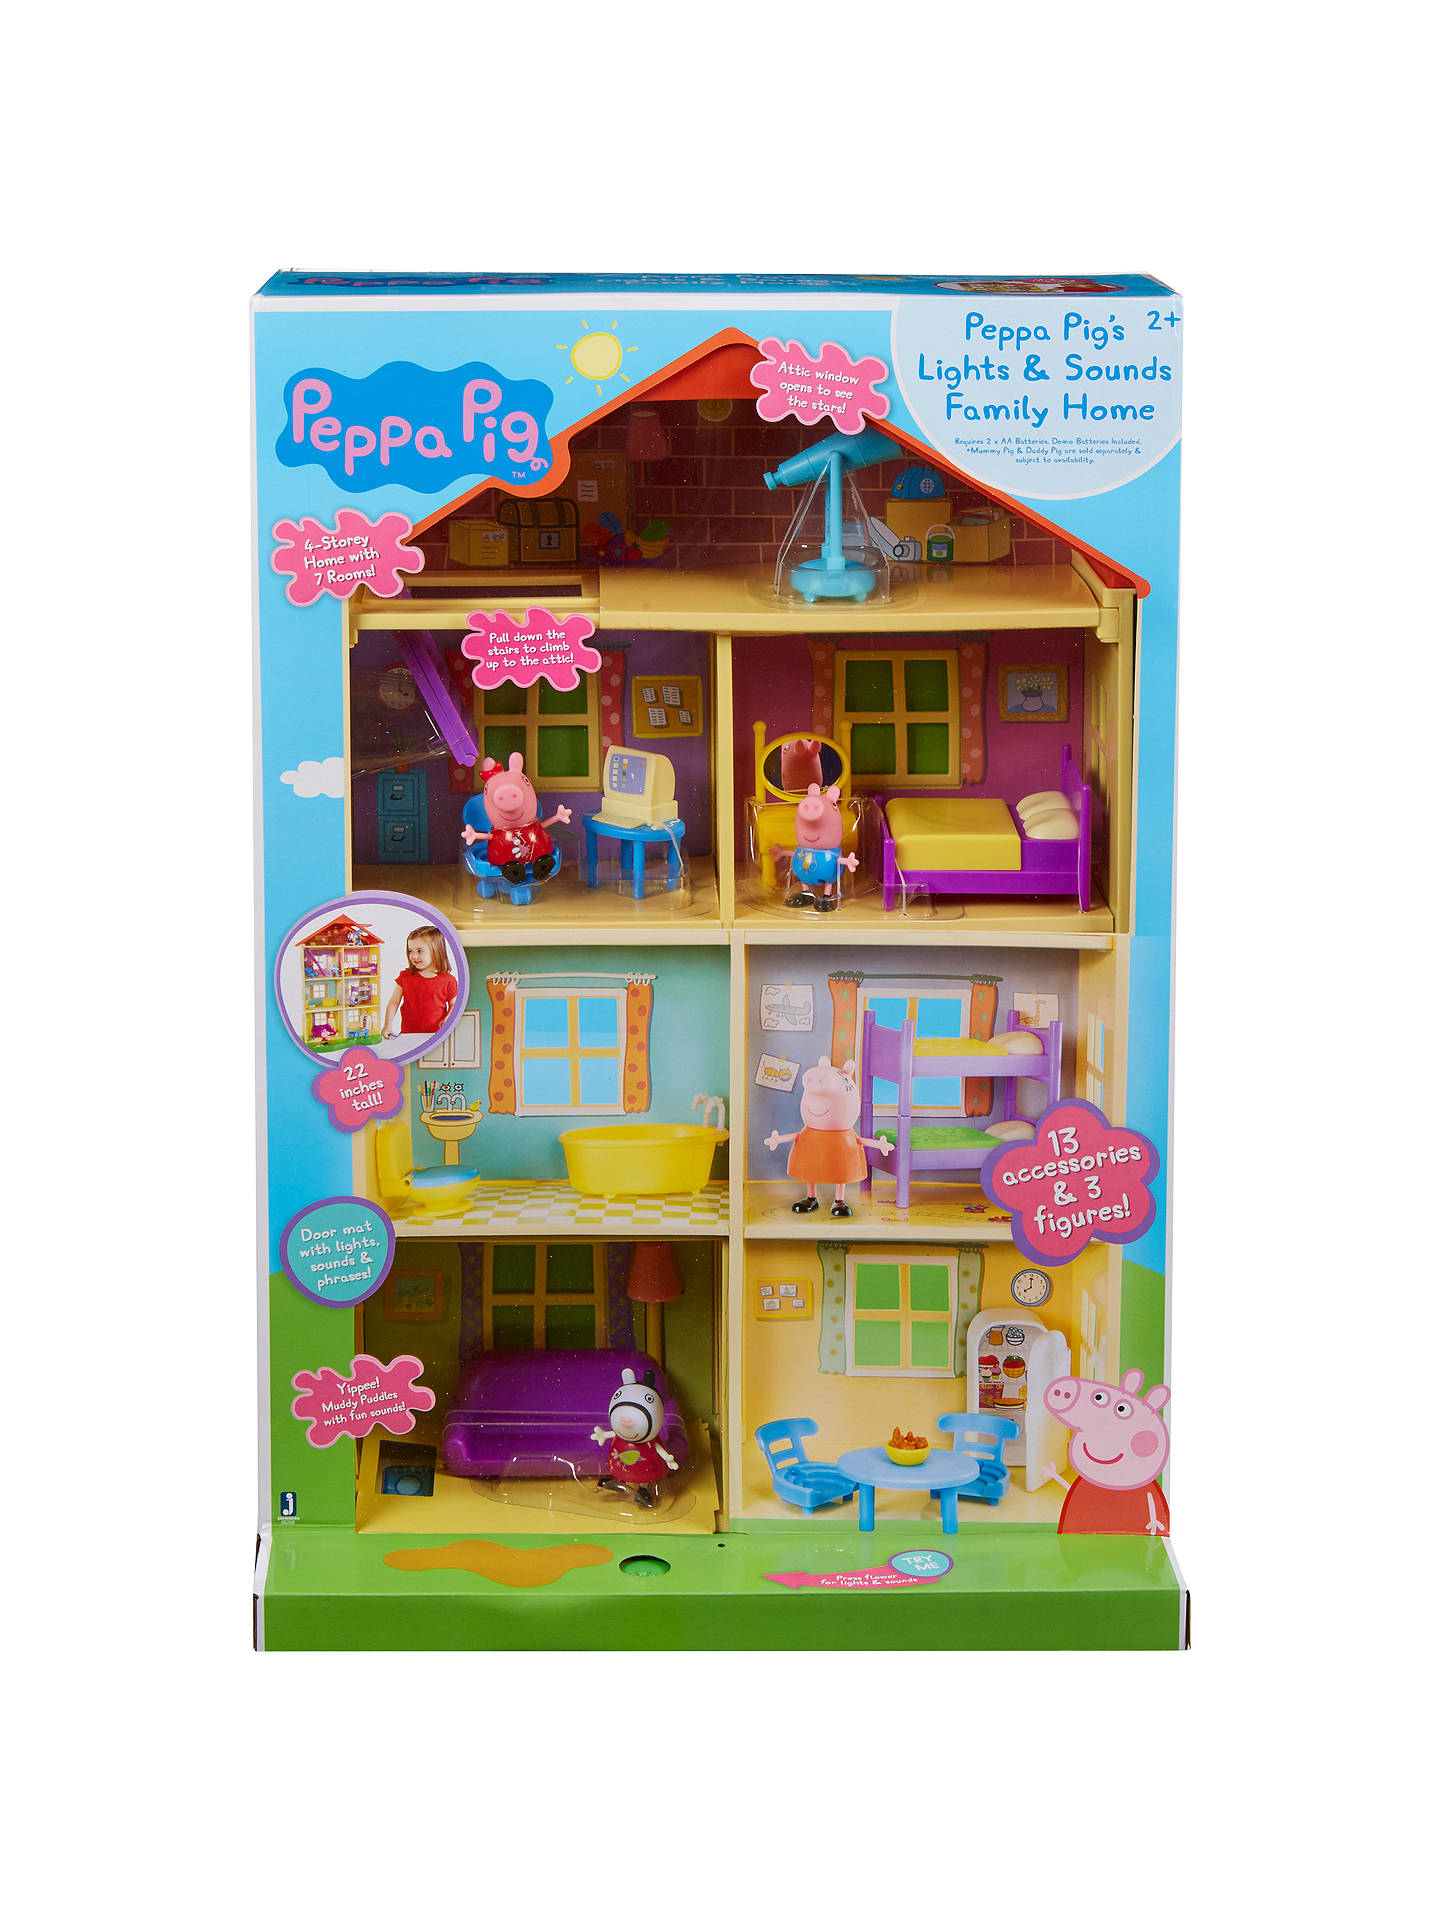 Peppa Pig's Lights & Sounds Family Home